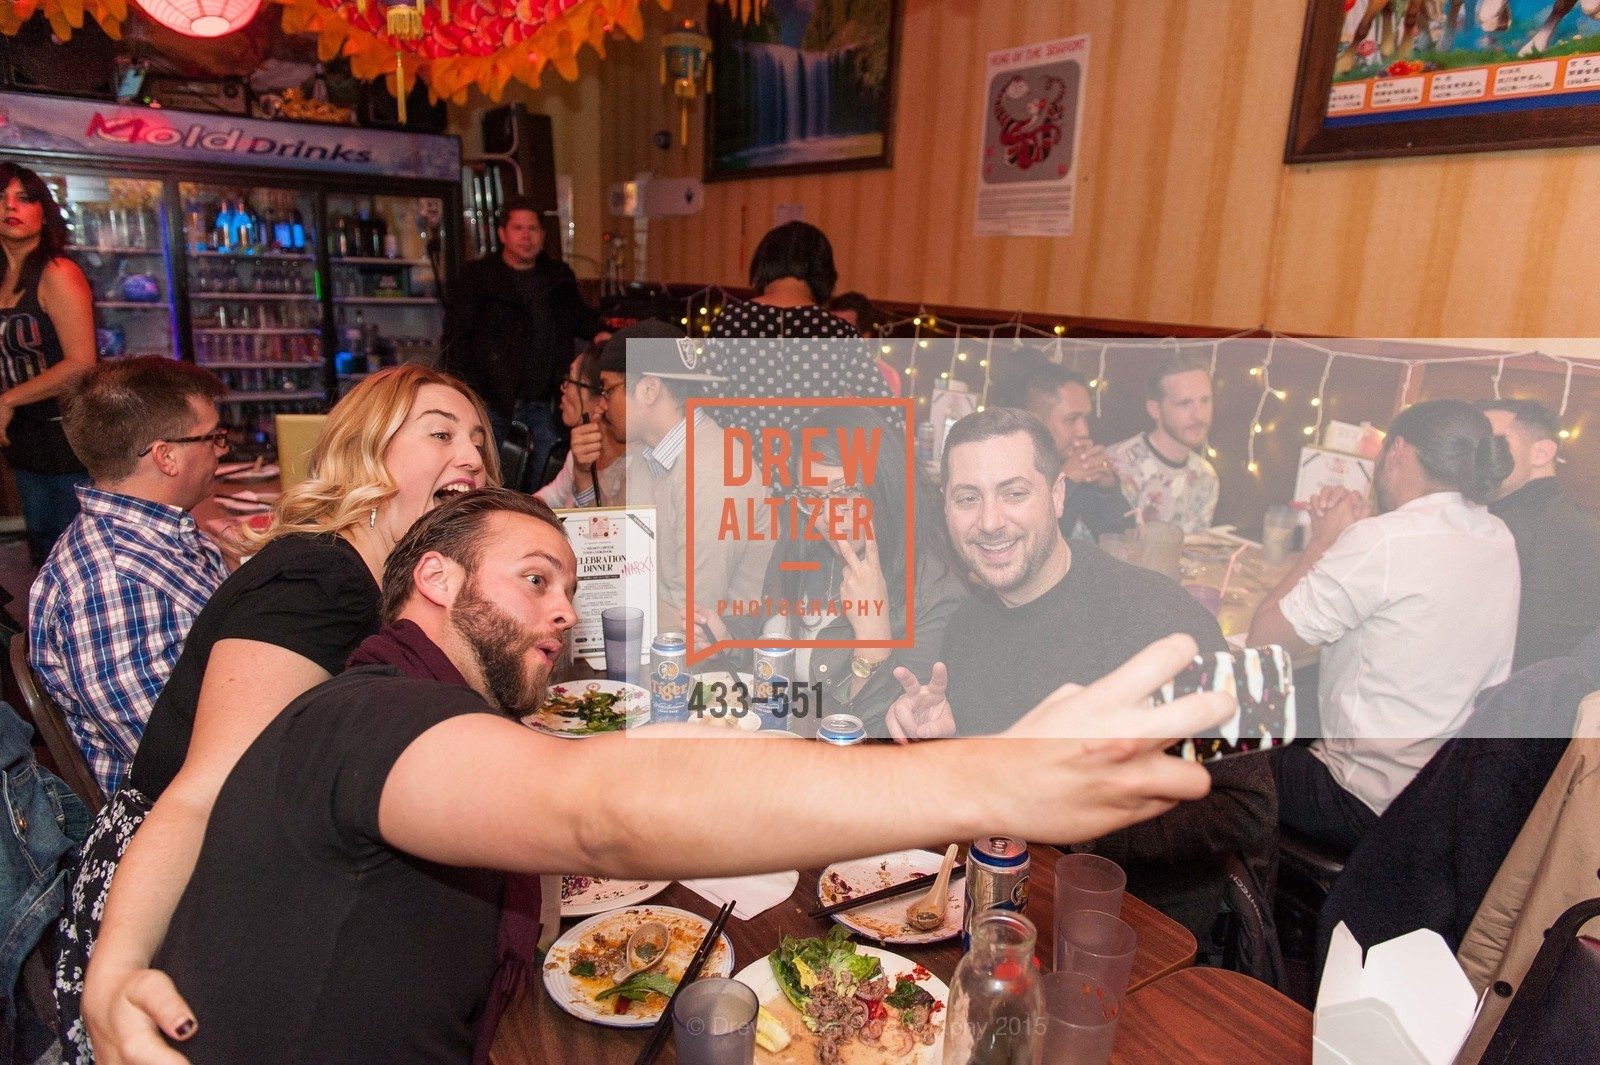 Top Picks, Mission Chinese Food Cookbook Release Dinner, November 16th, 2015, Photo,Drew Altizer, Drew Altizer Photography, full-service event agency, private events, San Francisco photographer, photographer California